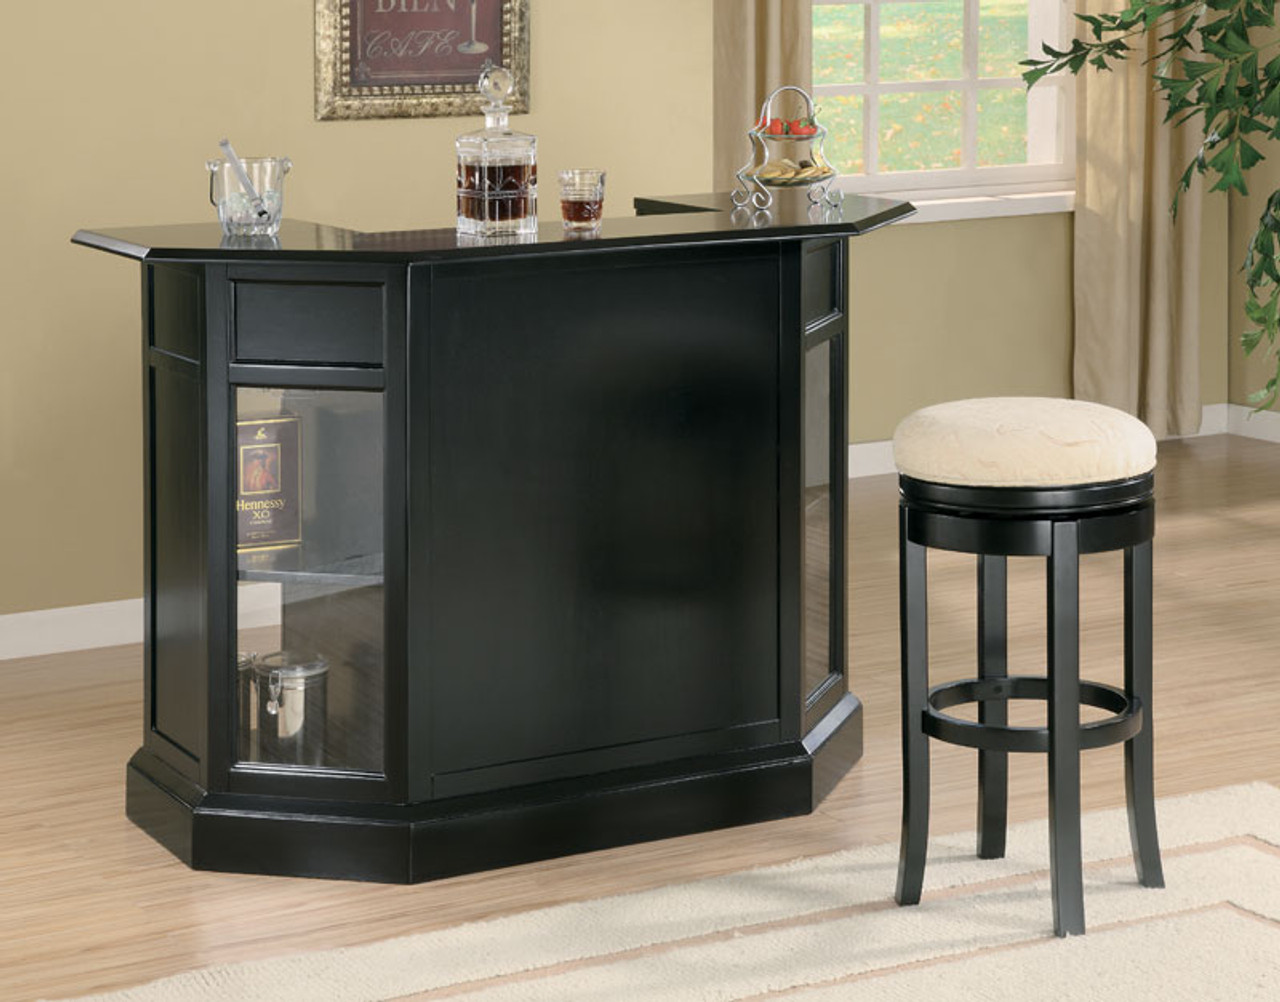 Anavia Black Home Bar Counter With Shelving